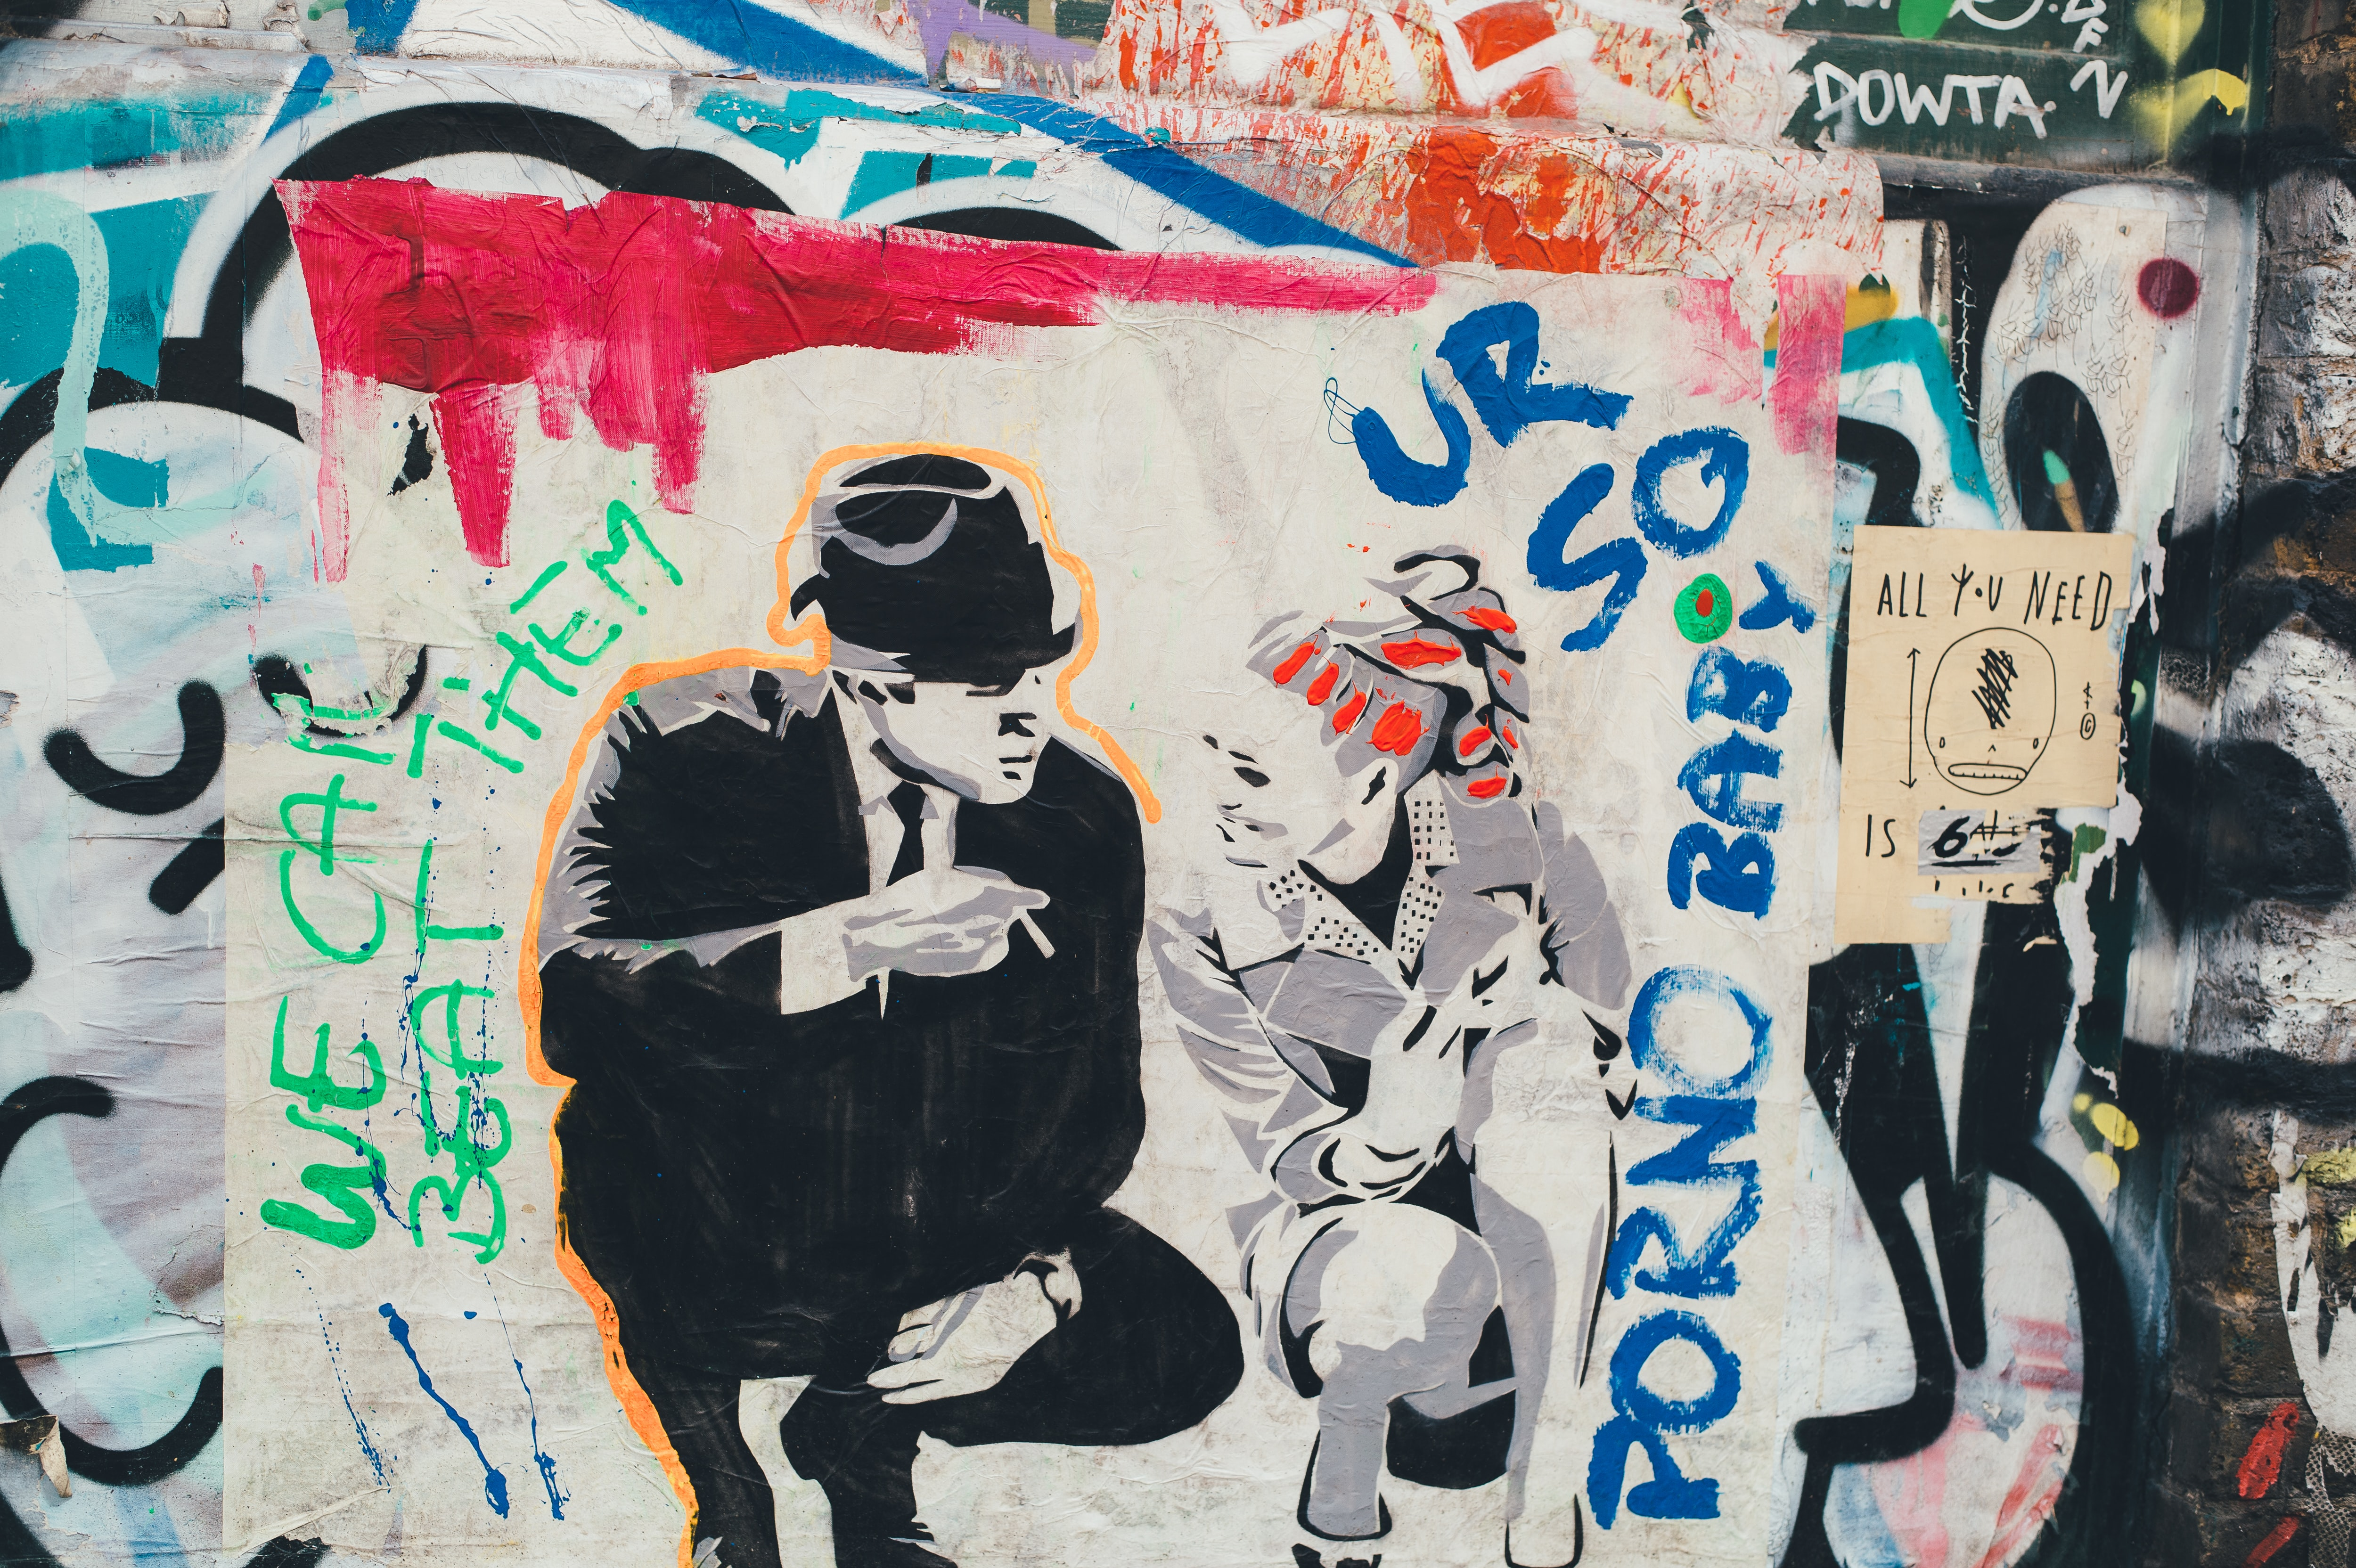 A graffiti graphic of a man in a suit with a top hat crouching while talking to a lady.